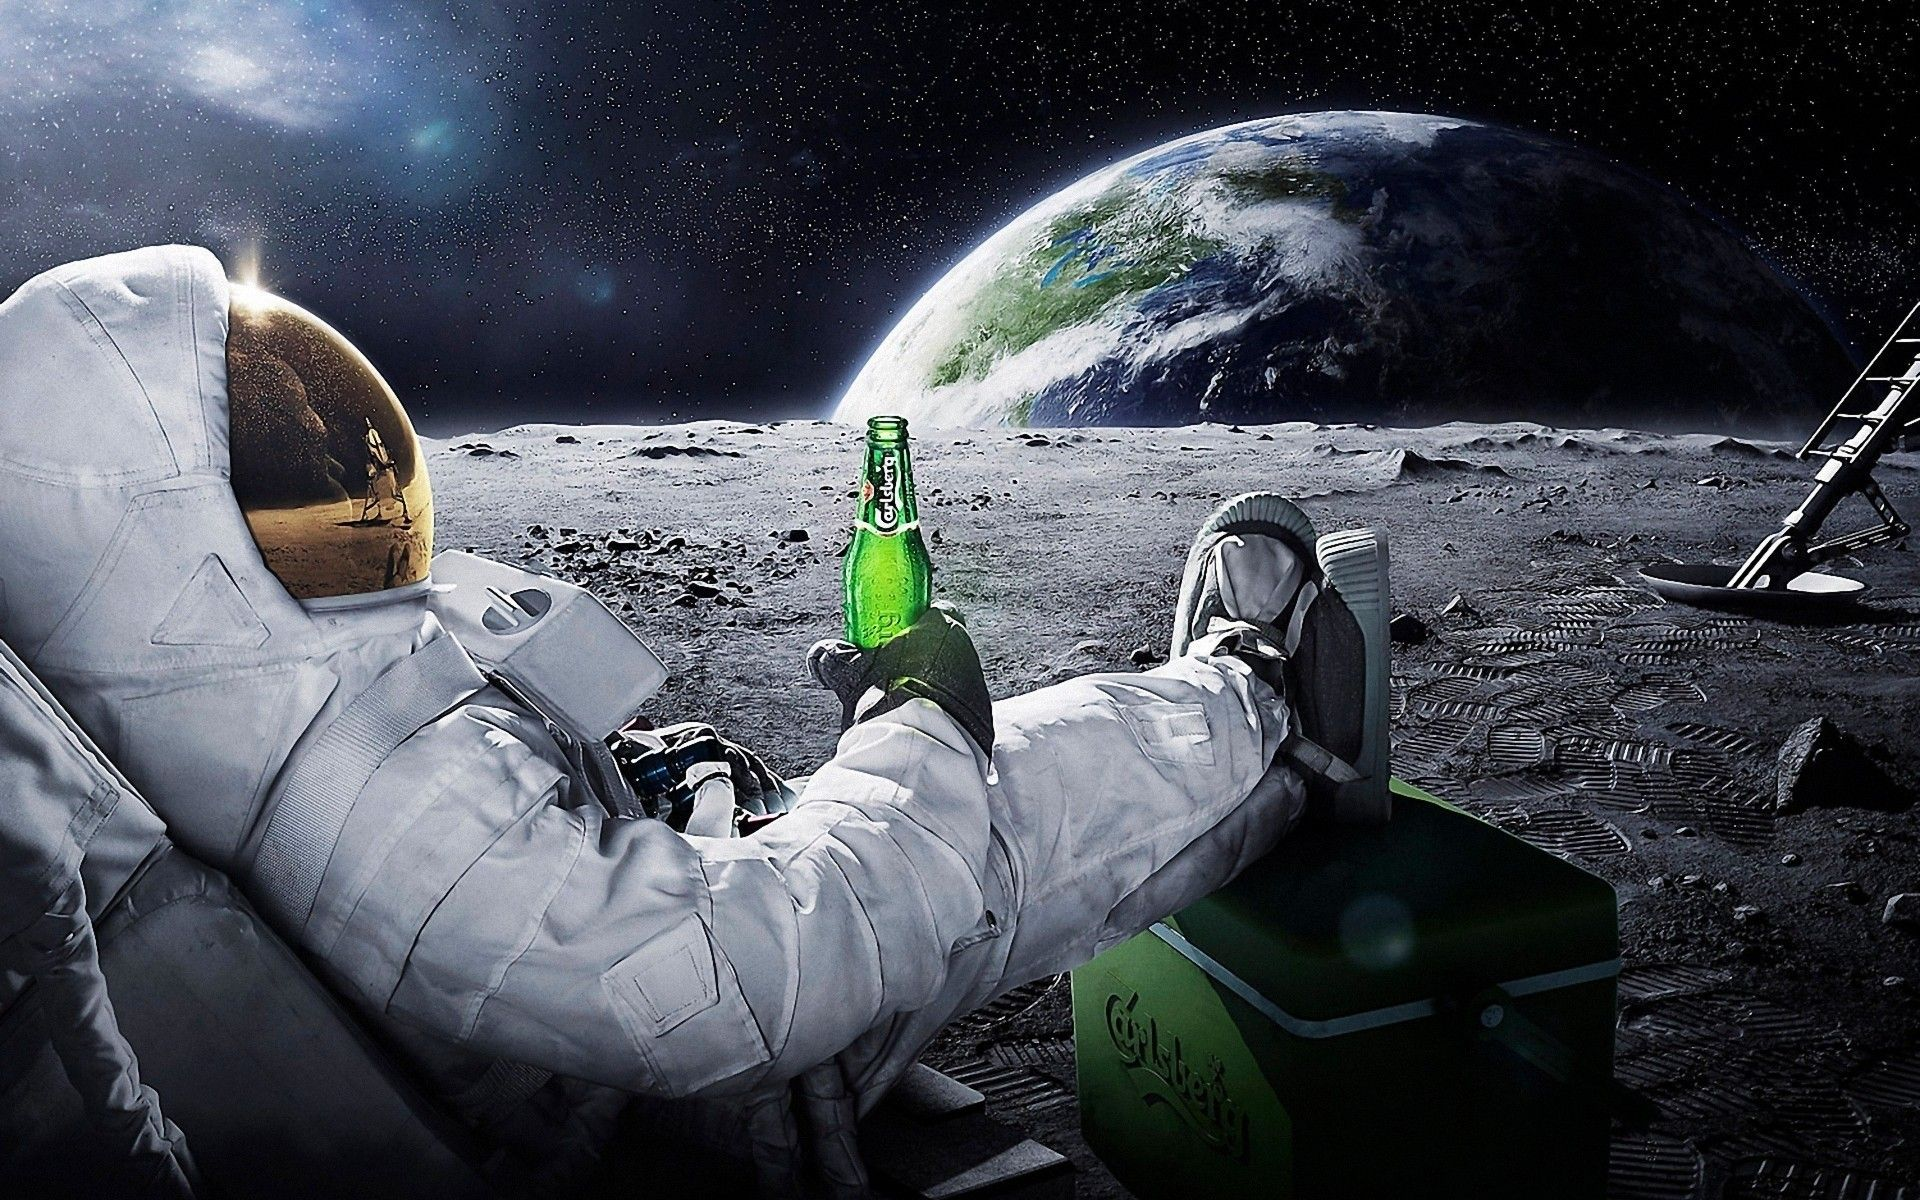 Astronaut Drinking Carlsberg Beer On The Moon 1920x1200 In 2020 Wallpaper Pc Astronaut Wallpaper Computer Wallpaper Hd